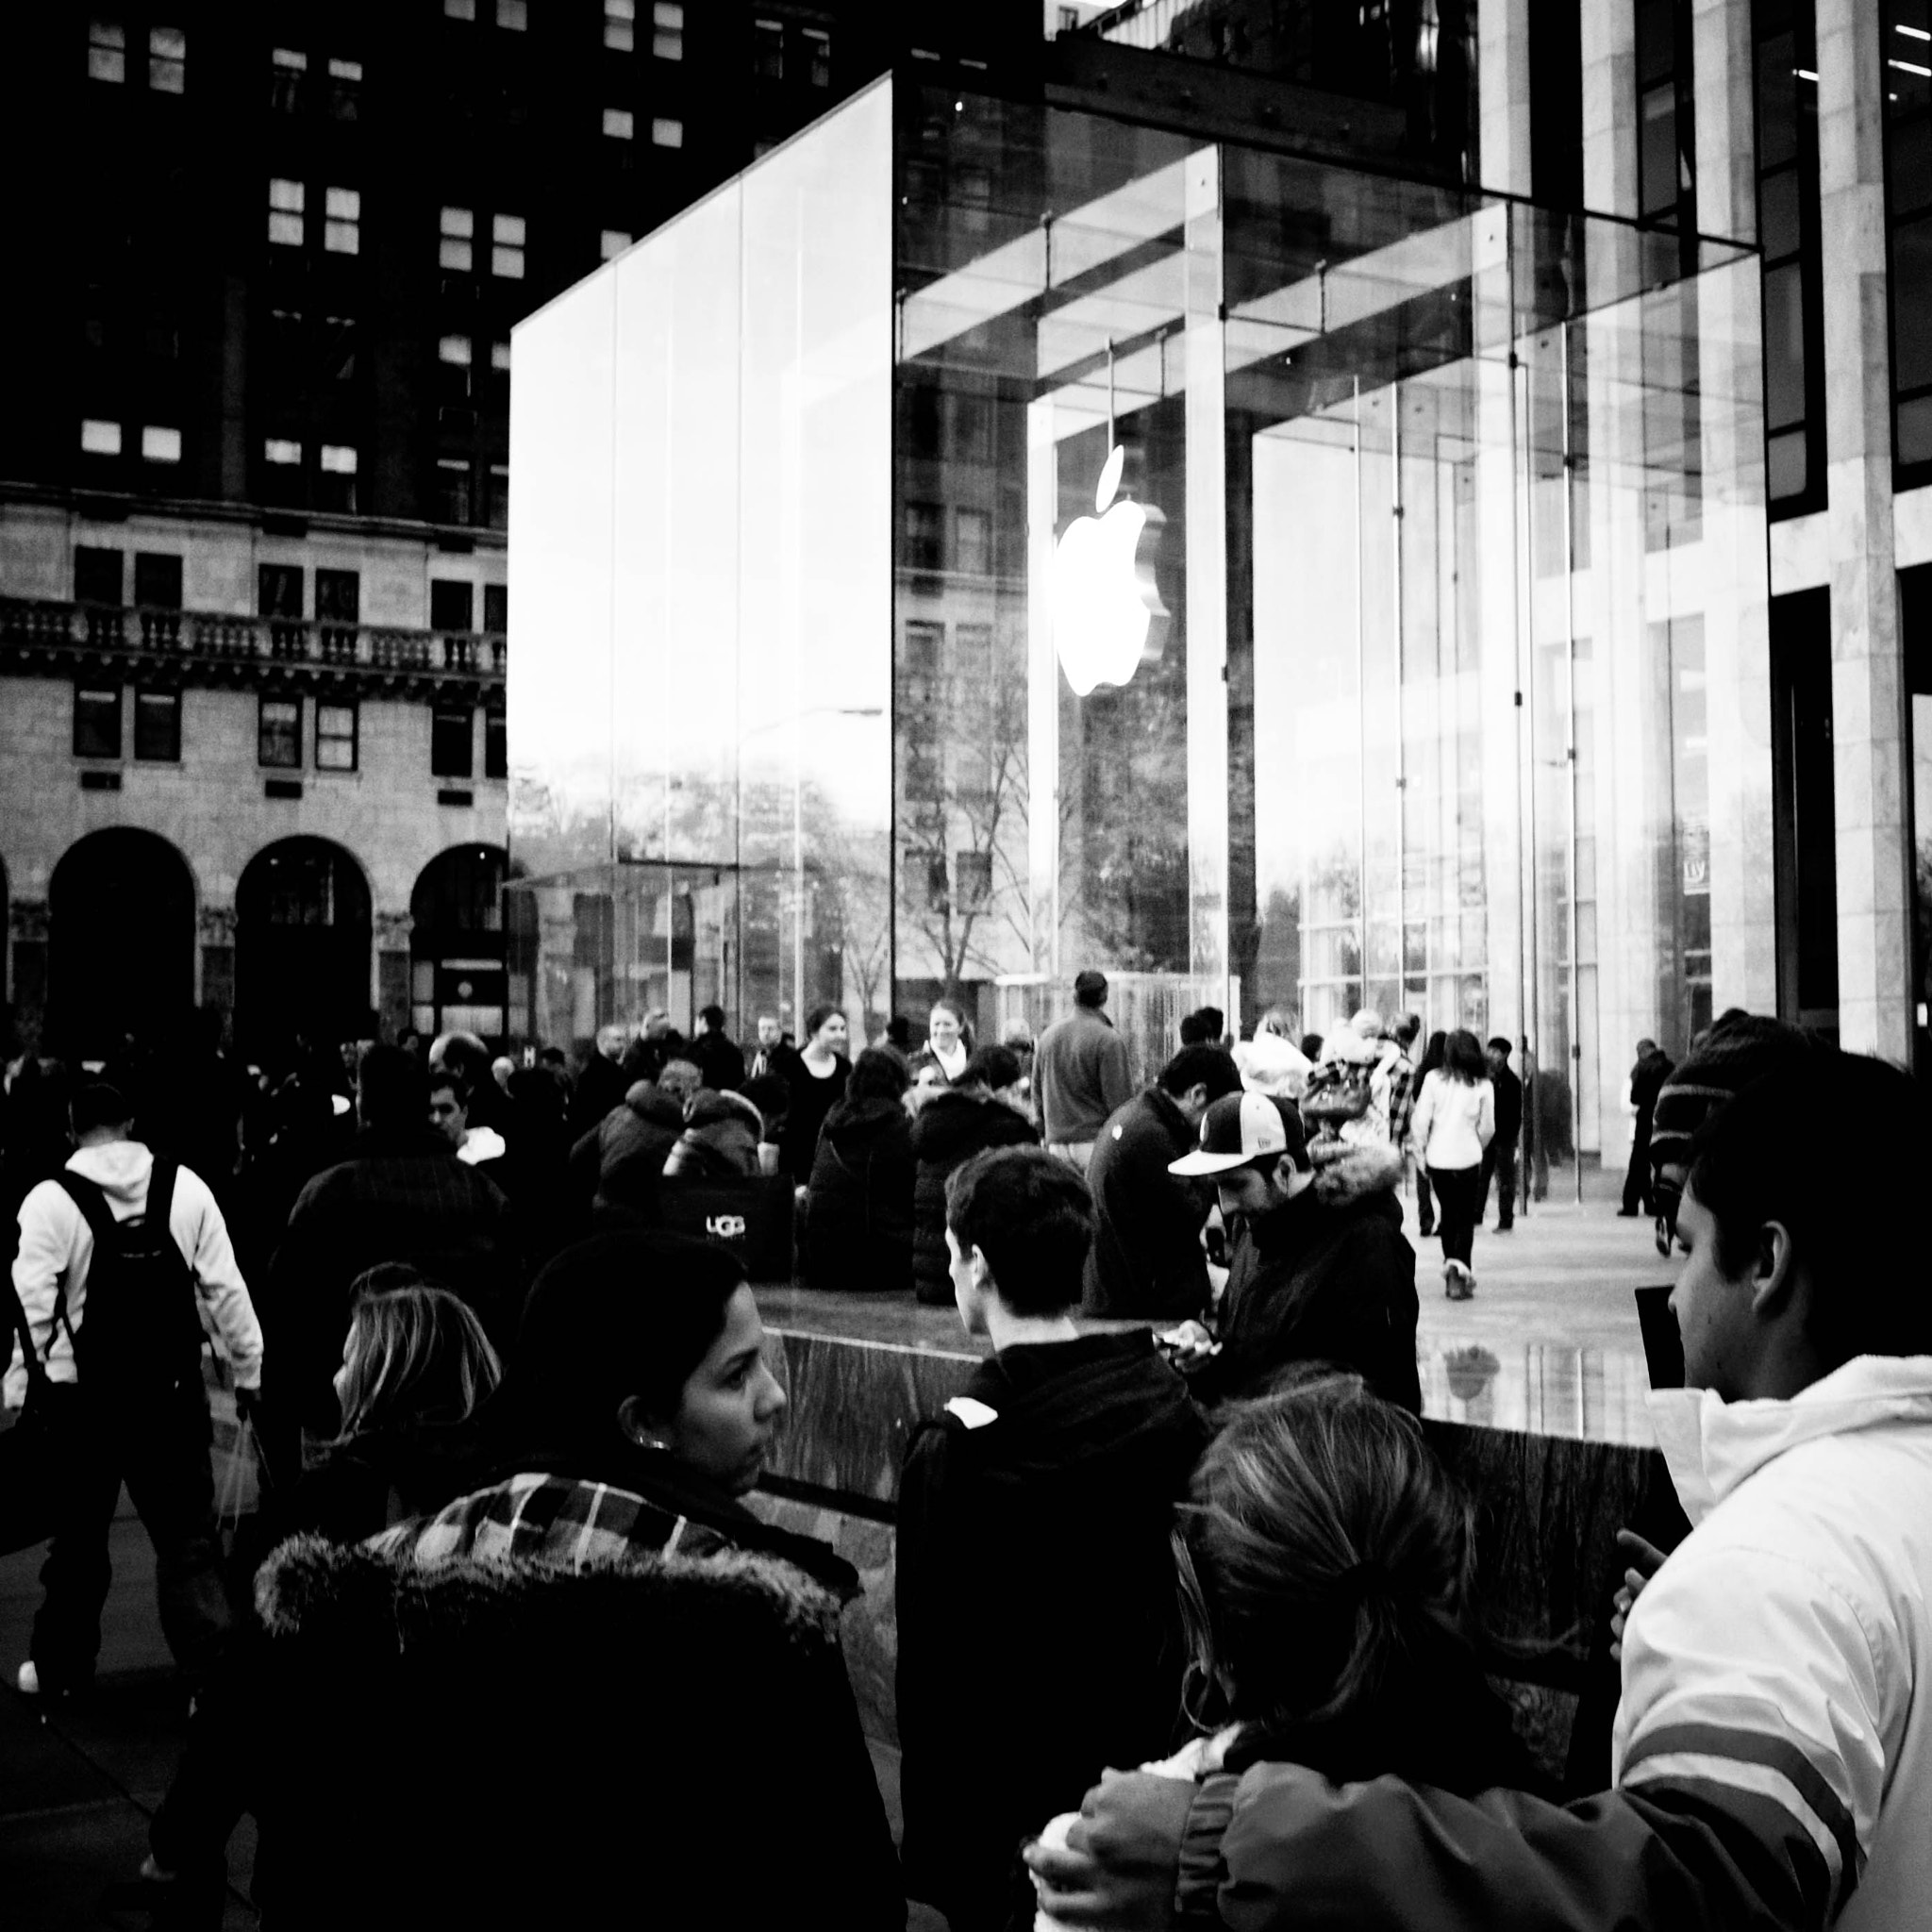 Photograph Fifth Avenue, Black Friday, Apple Store Line by Joseph Nash on 500px